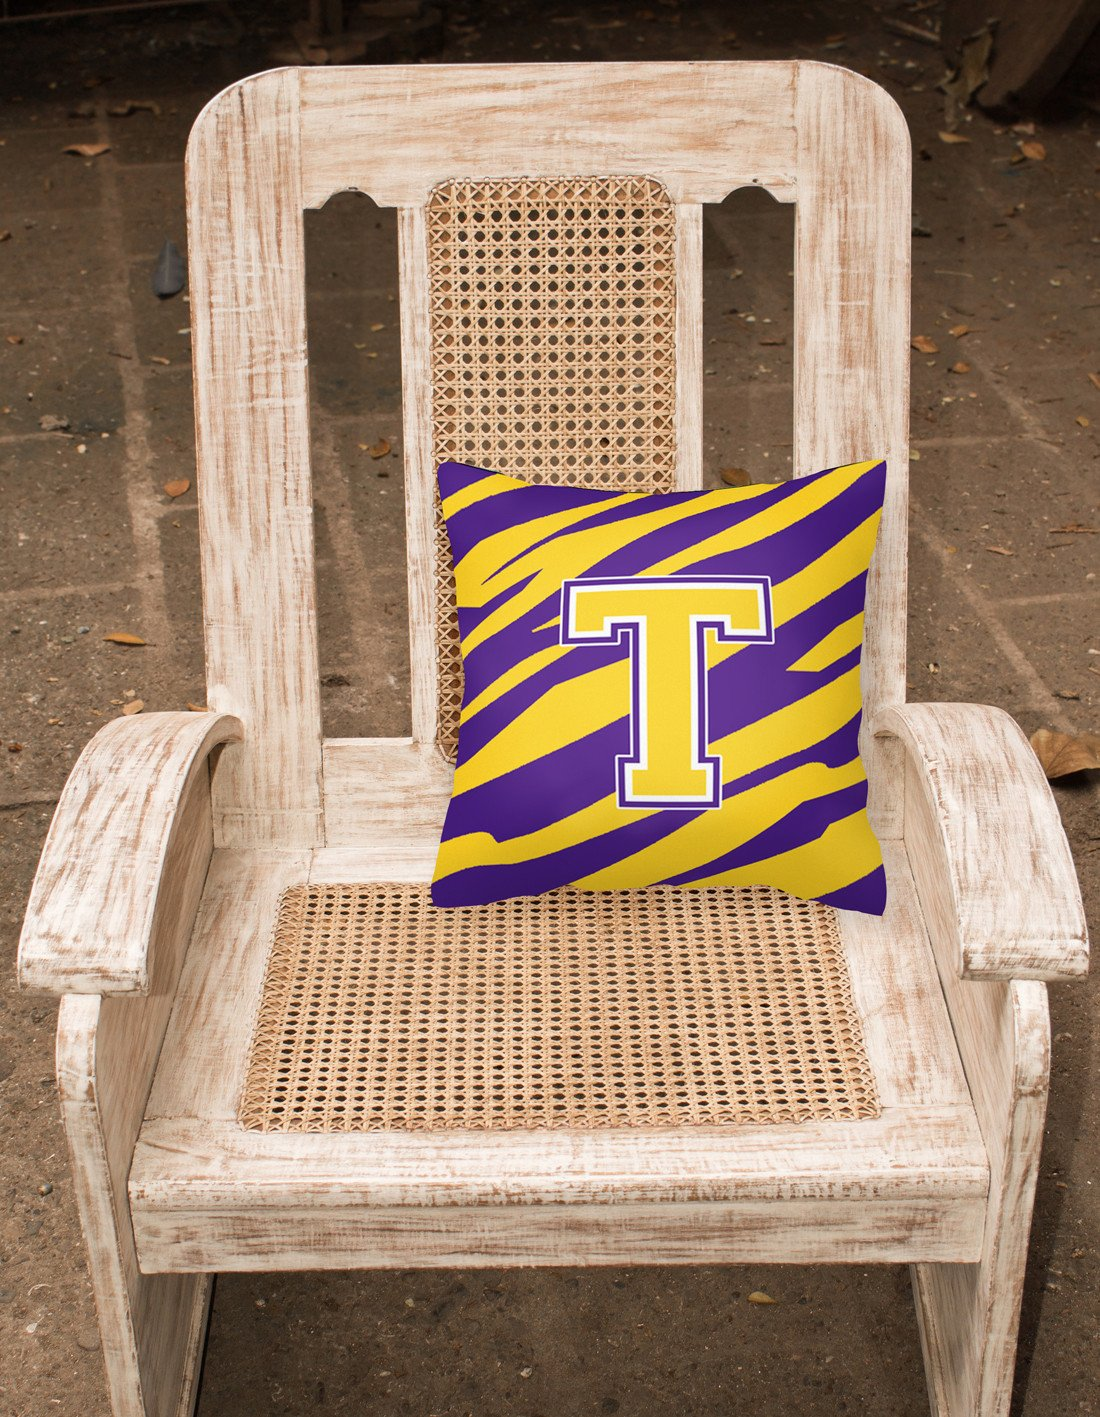 Monogram - Tiger Stripe - Purple Gold Decorative Canvas Fabric Pillow Initial T - the-store.com